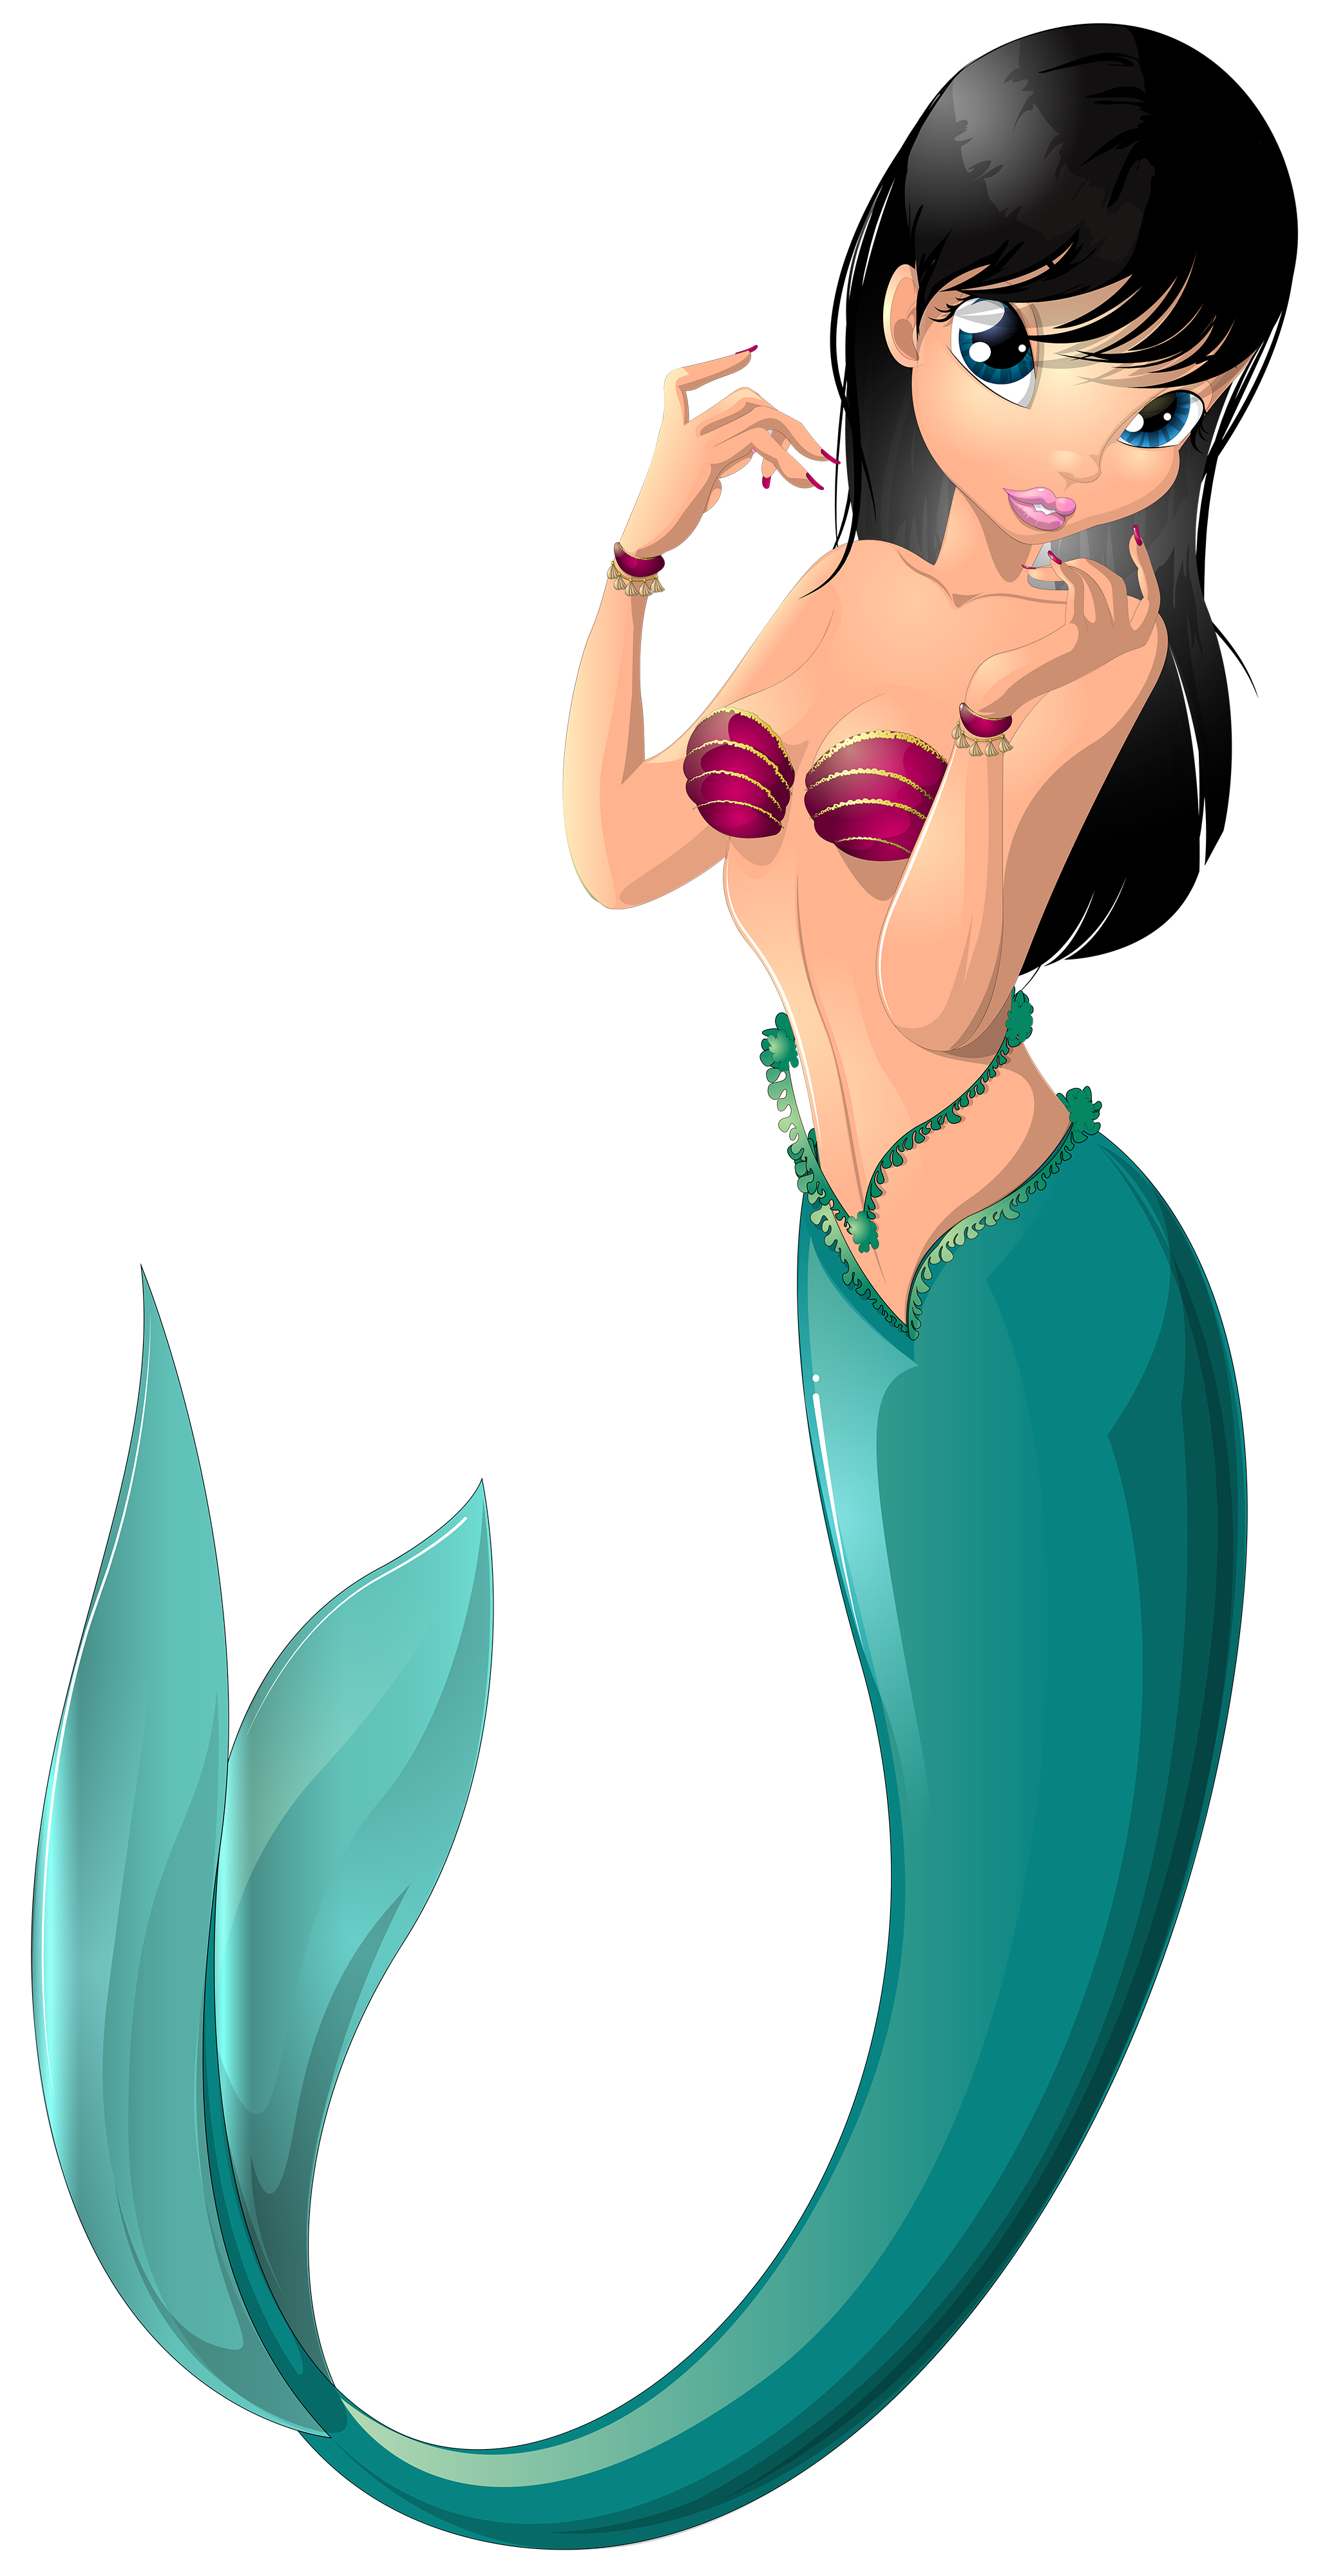 Mermaid png images. Clip art image gallery